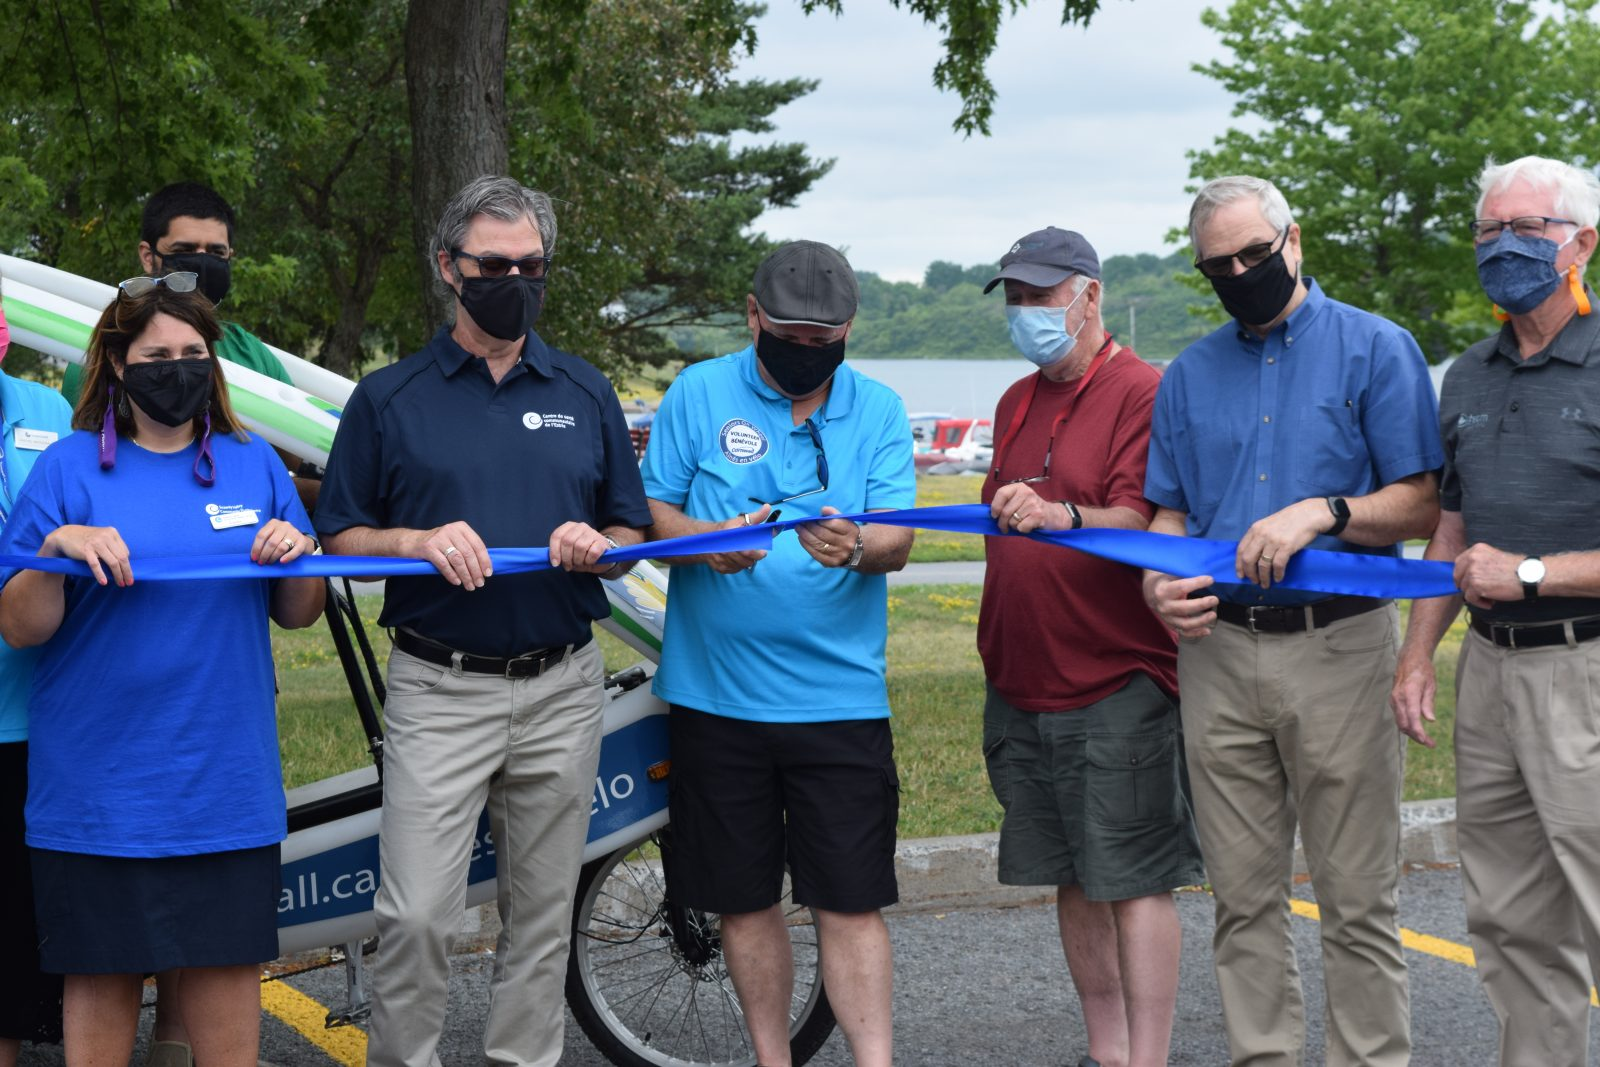 Seniors on Wheels program officially launches